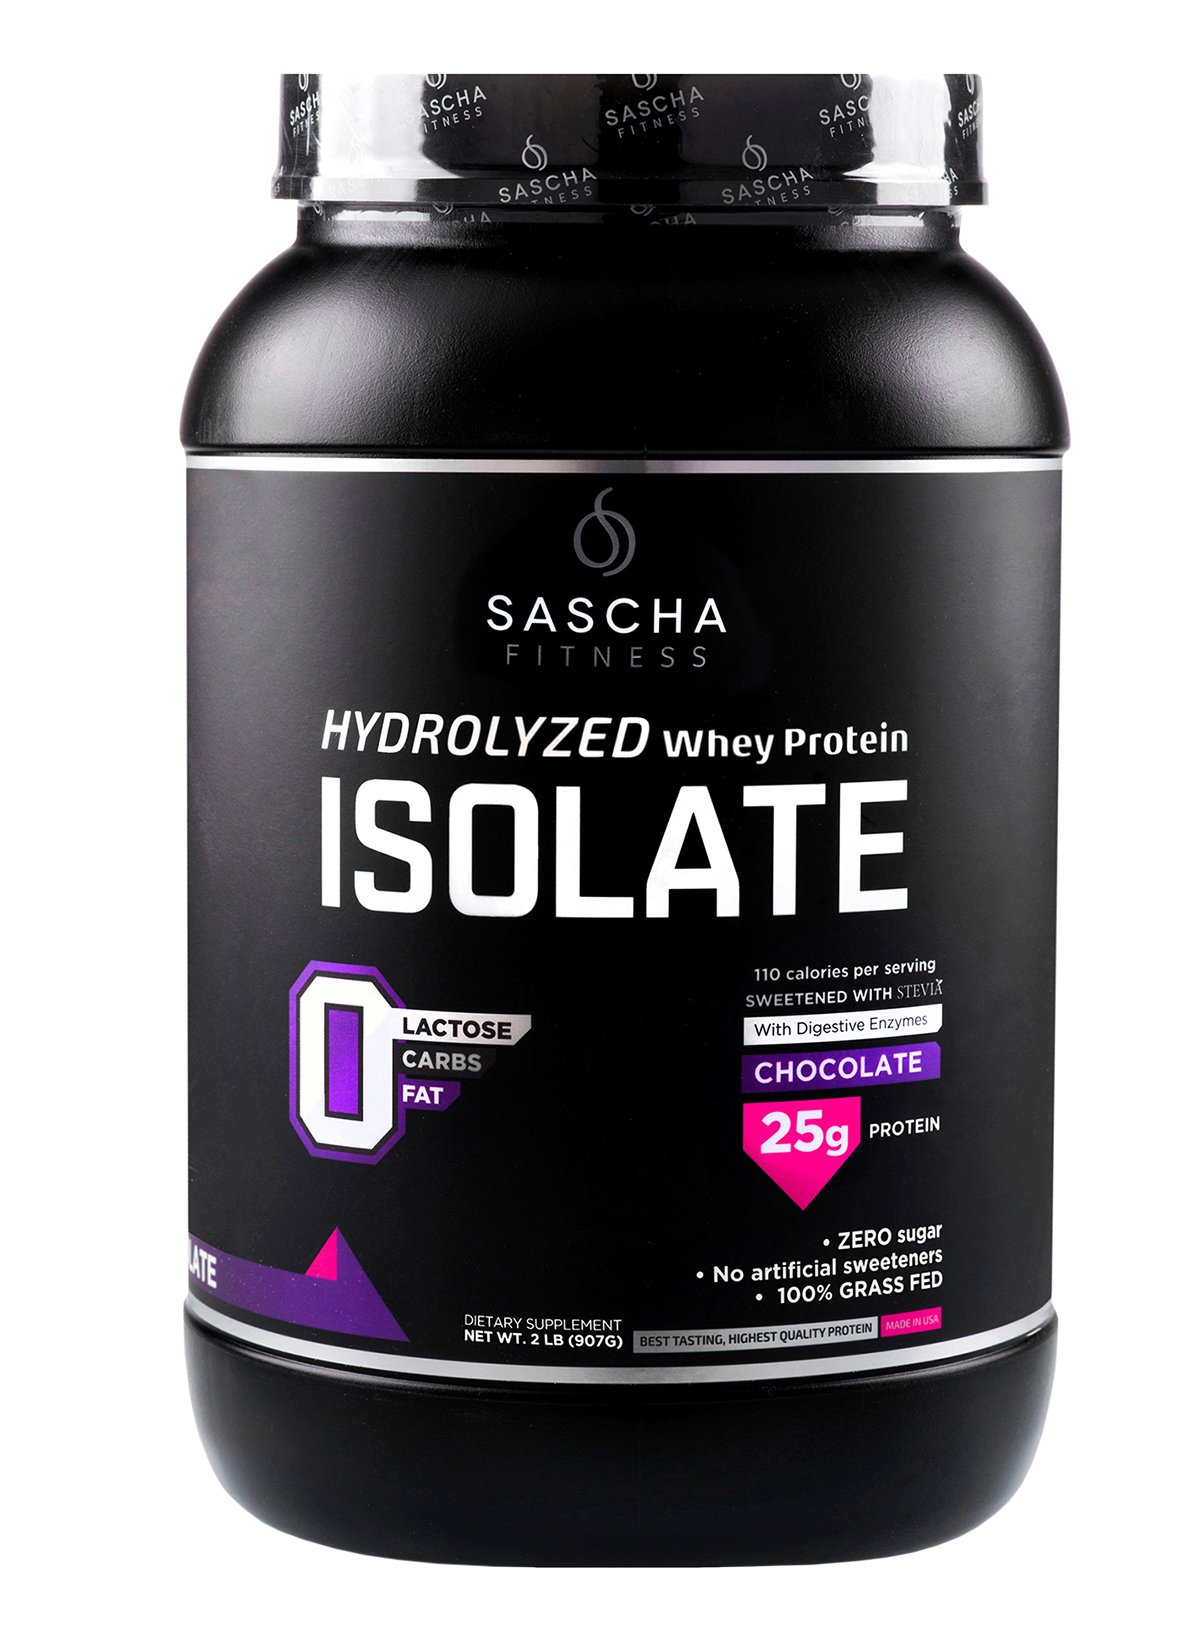 Sascha Fitness Hydrolyzed Whey Protein Isolate,100% Grass-Fed (2 Pound,Chocolate) by SASCHA FITNESS